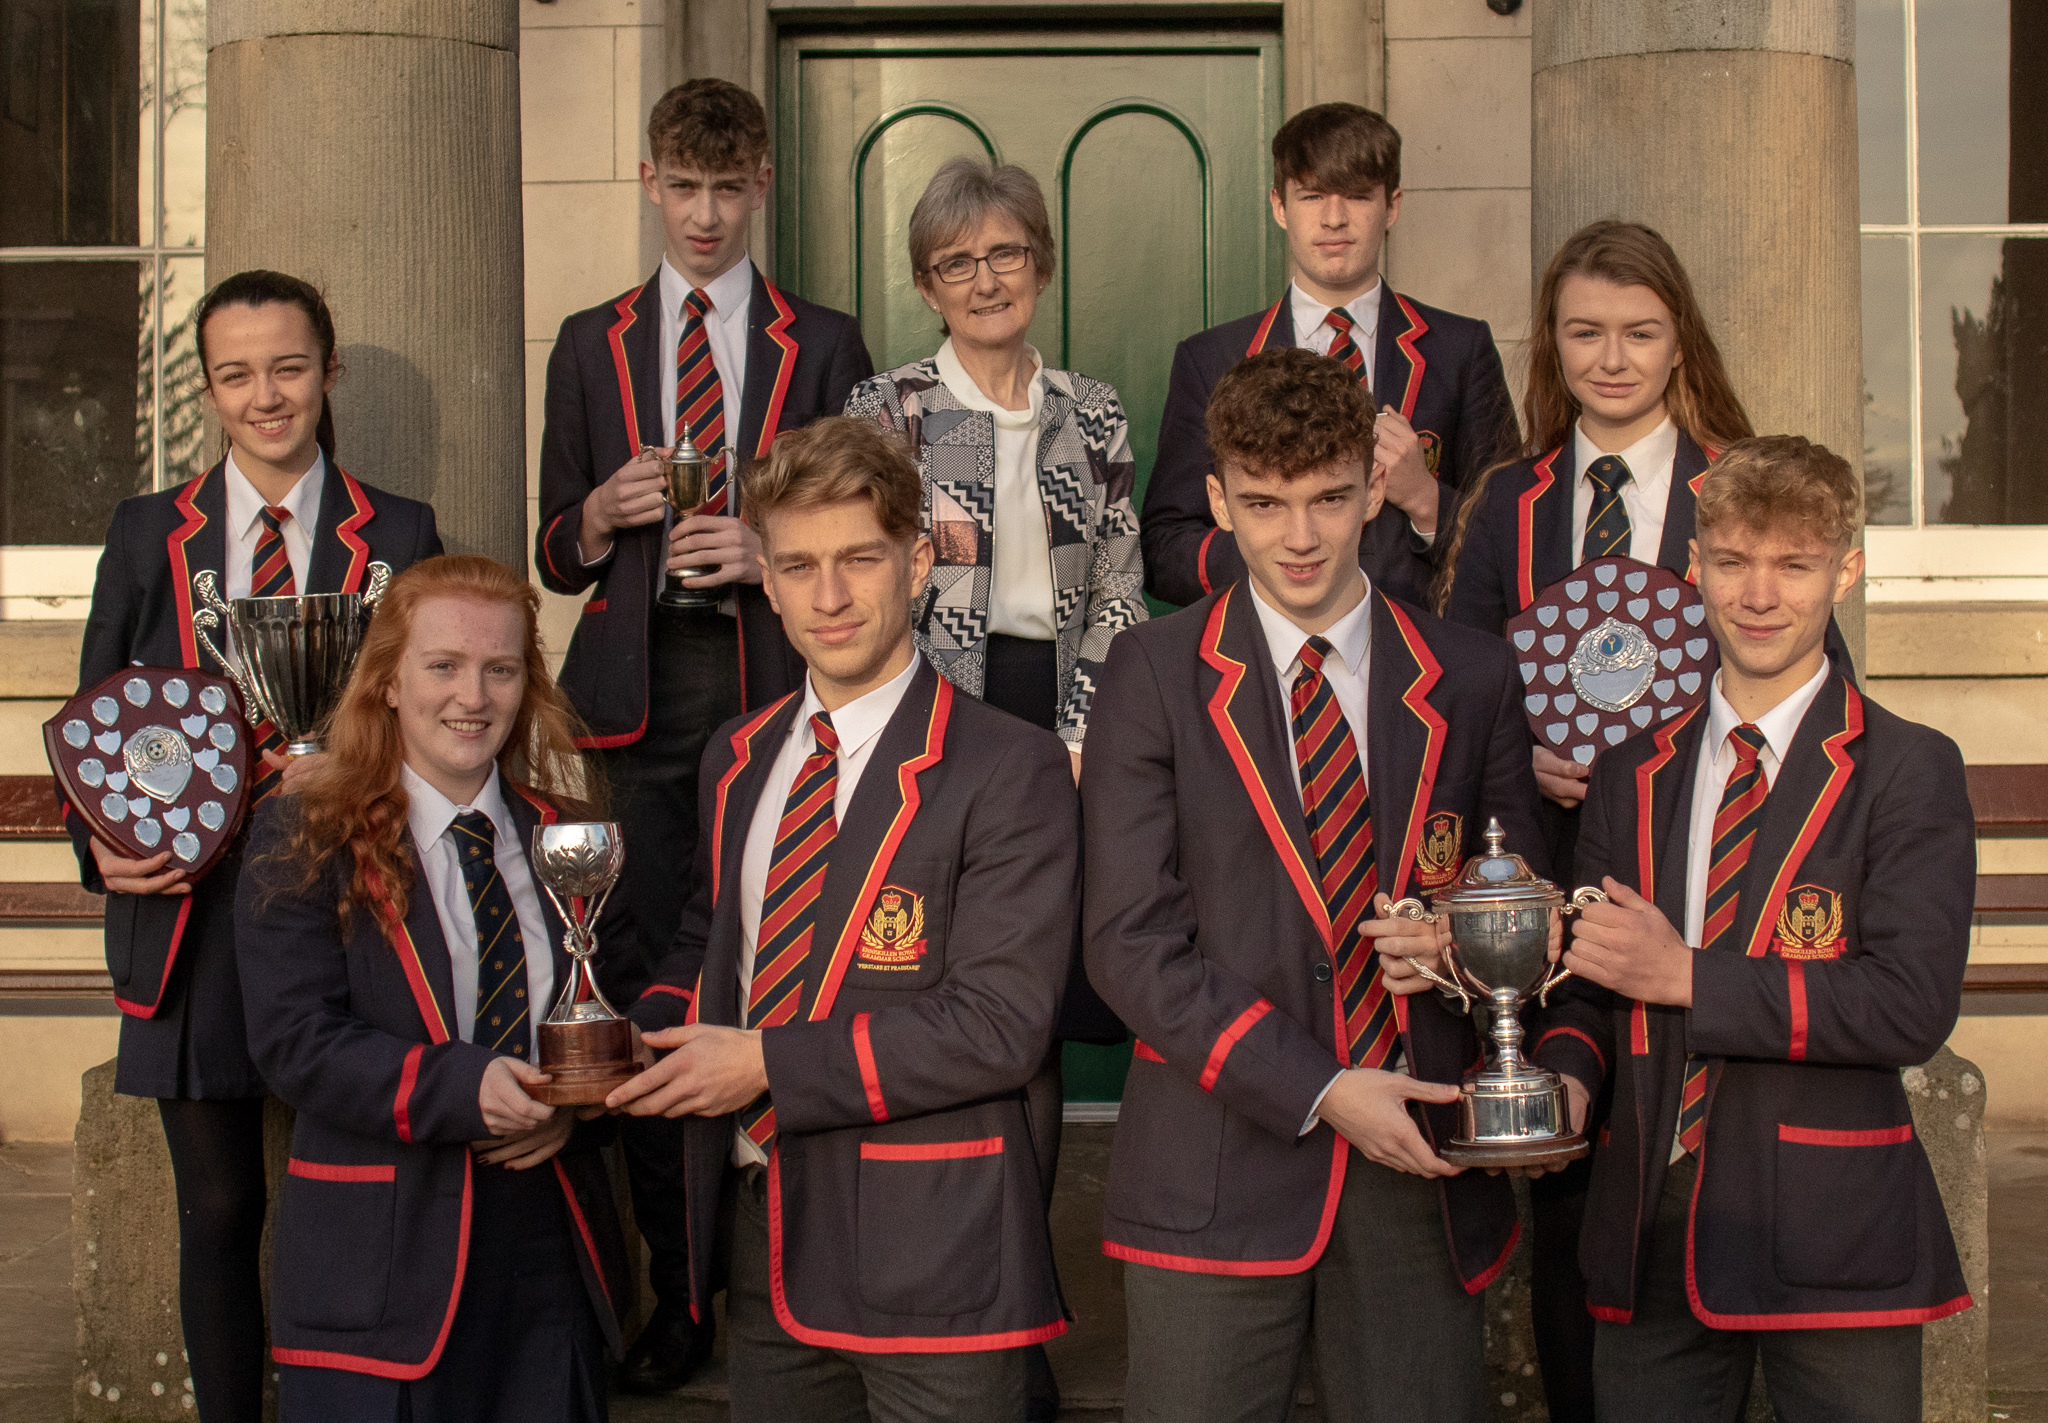 'Celebration, consolidation and commitment,' theme of Enniskillen Royal Grammar School prize giving